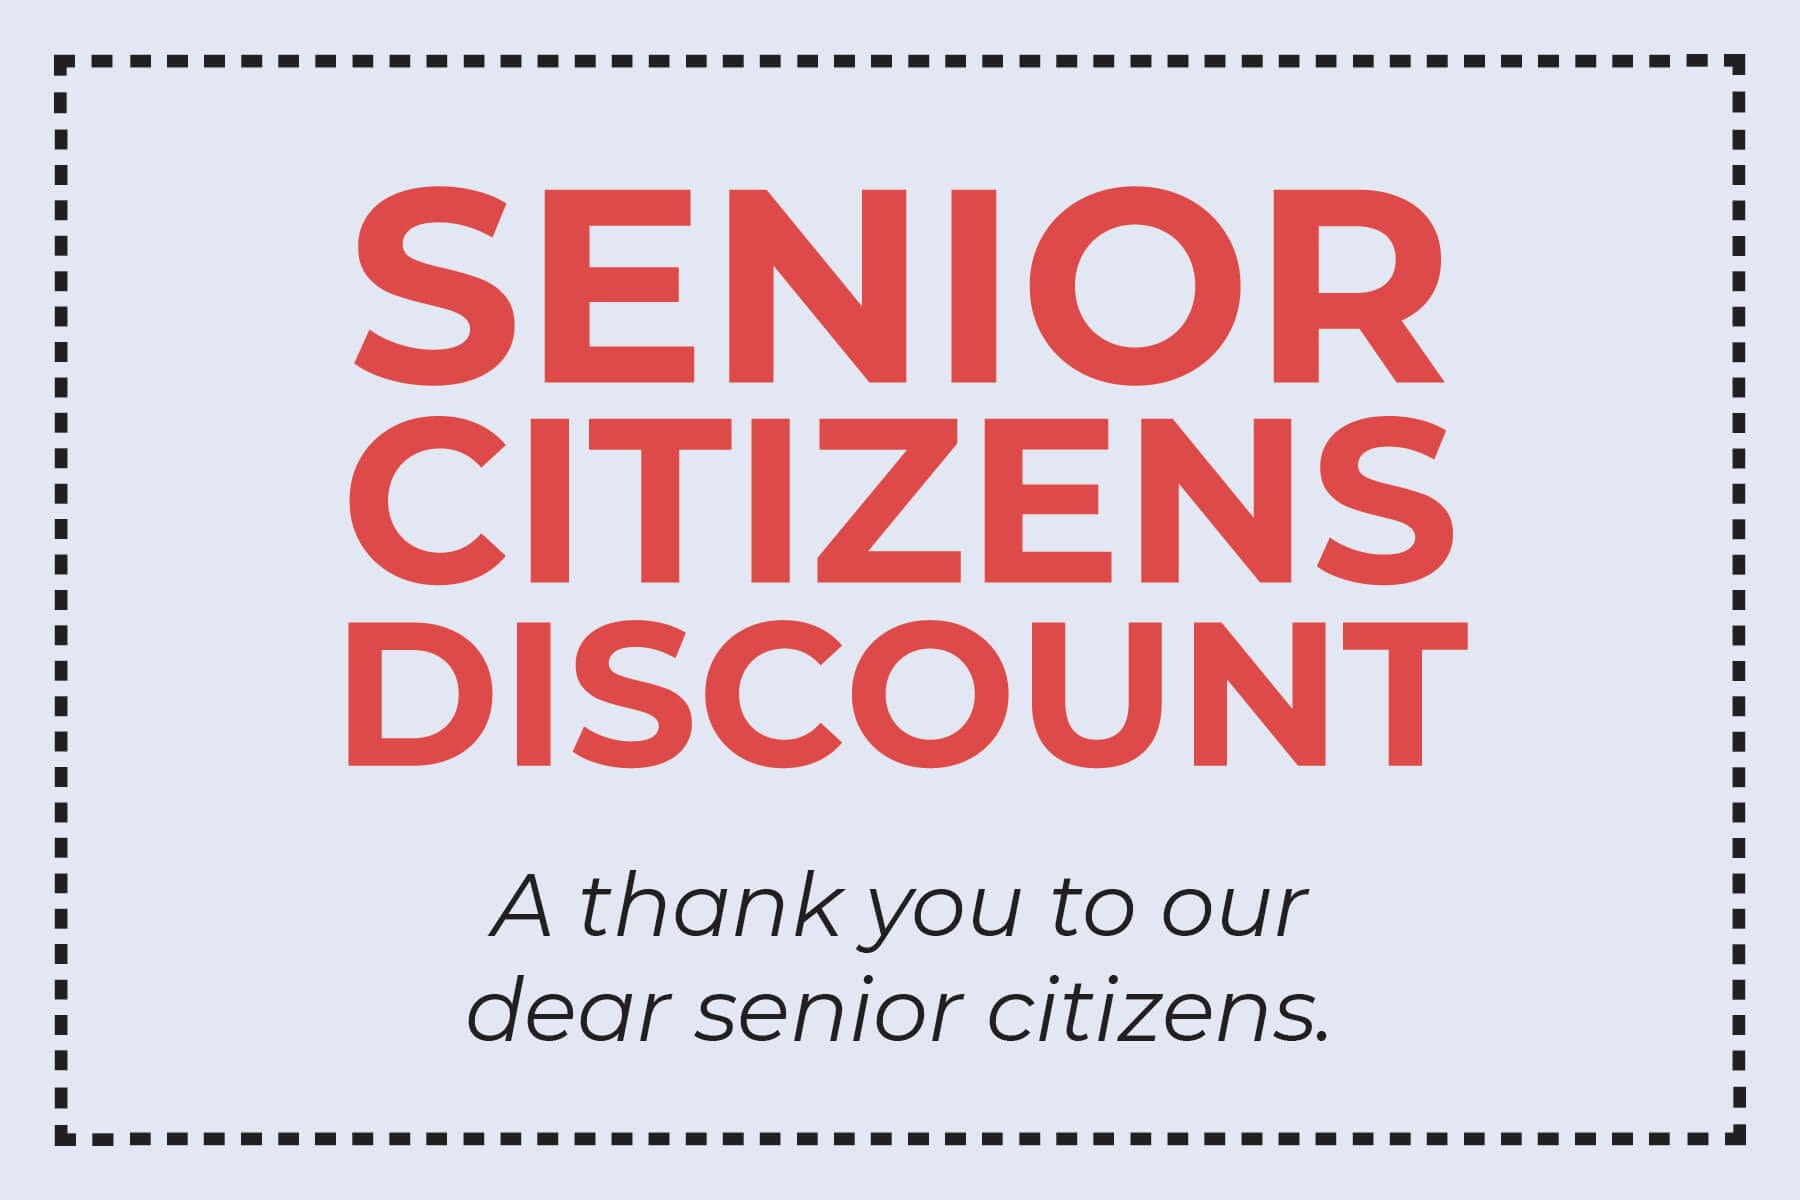 senior citizens discount hvac coupon